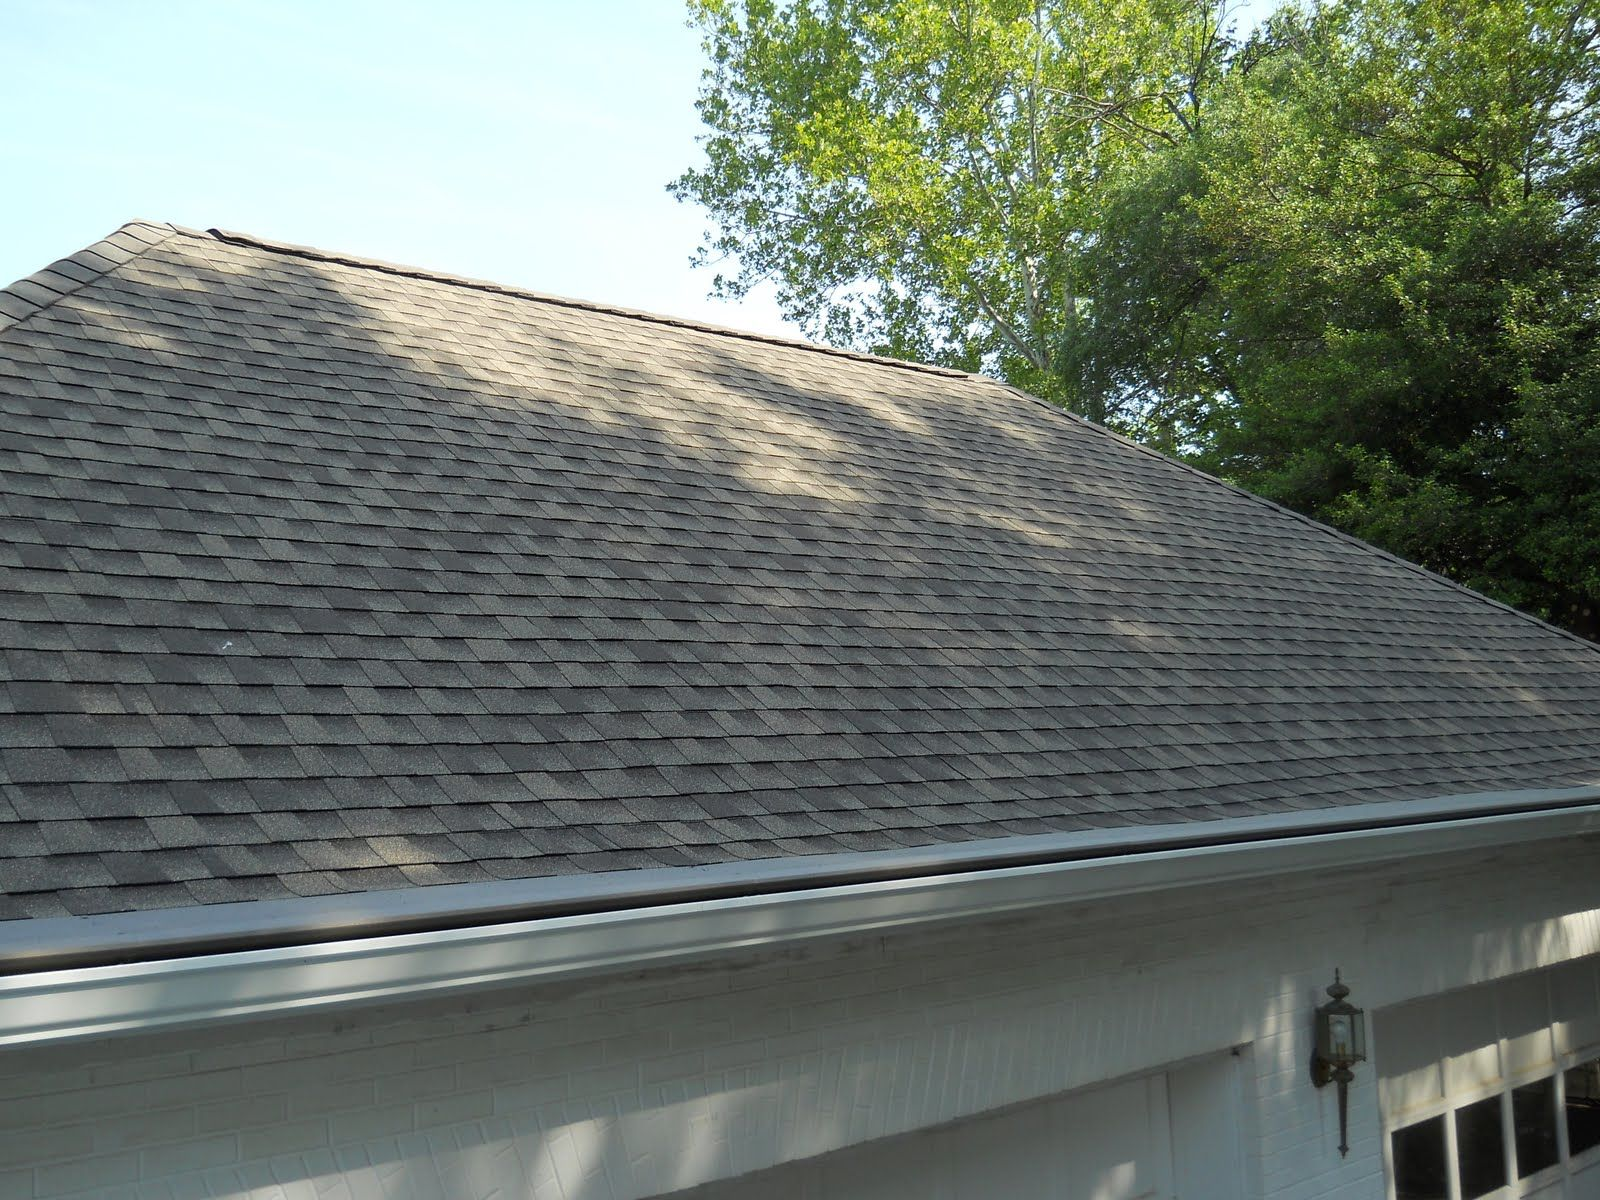 New Gaf Dimensional Style Roof Installed With Gutter